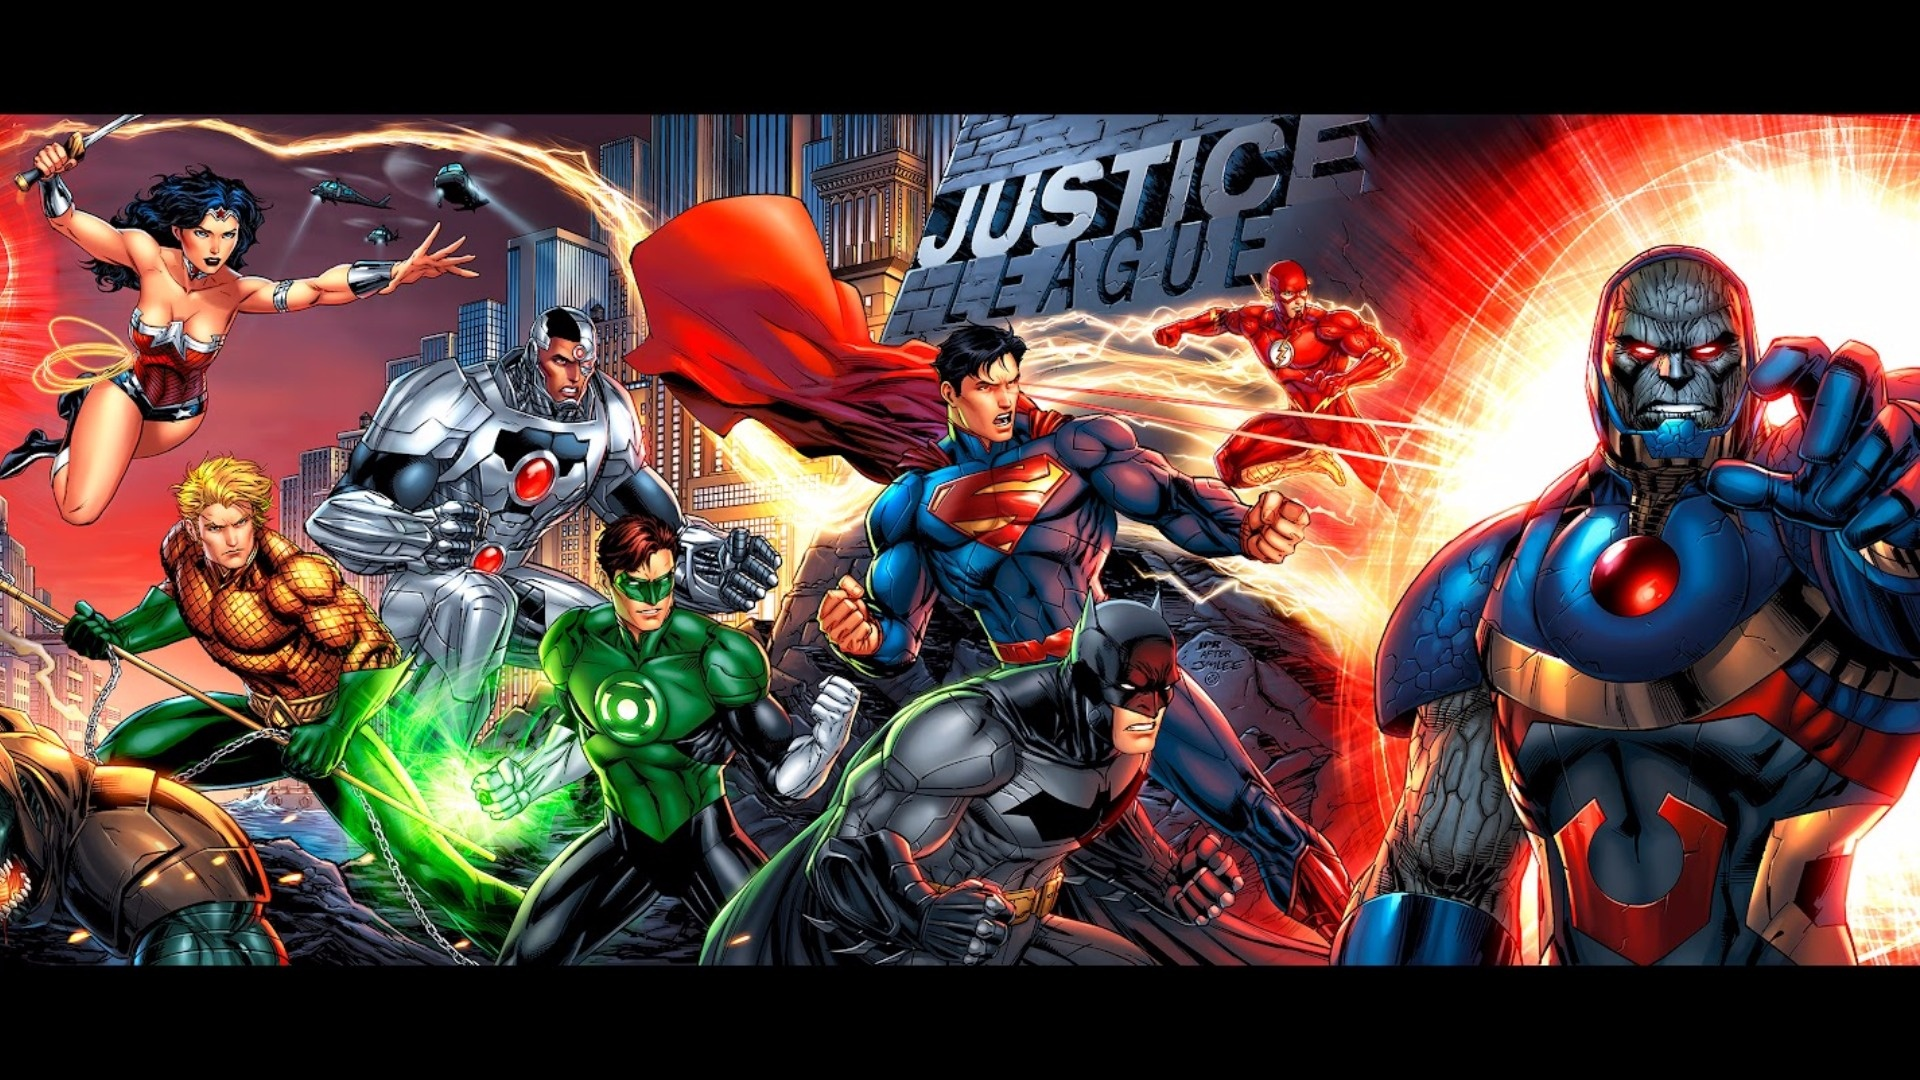 Justice League hd background